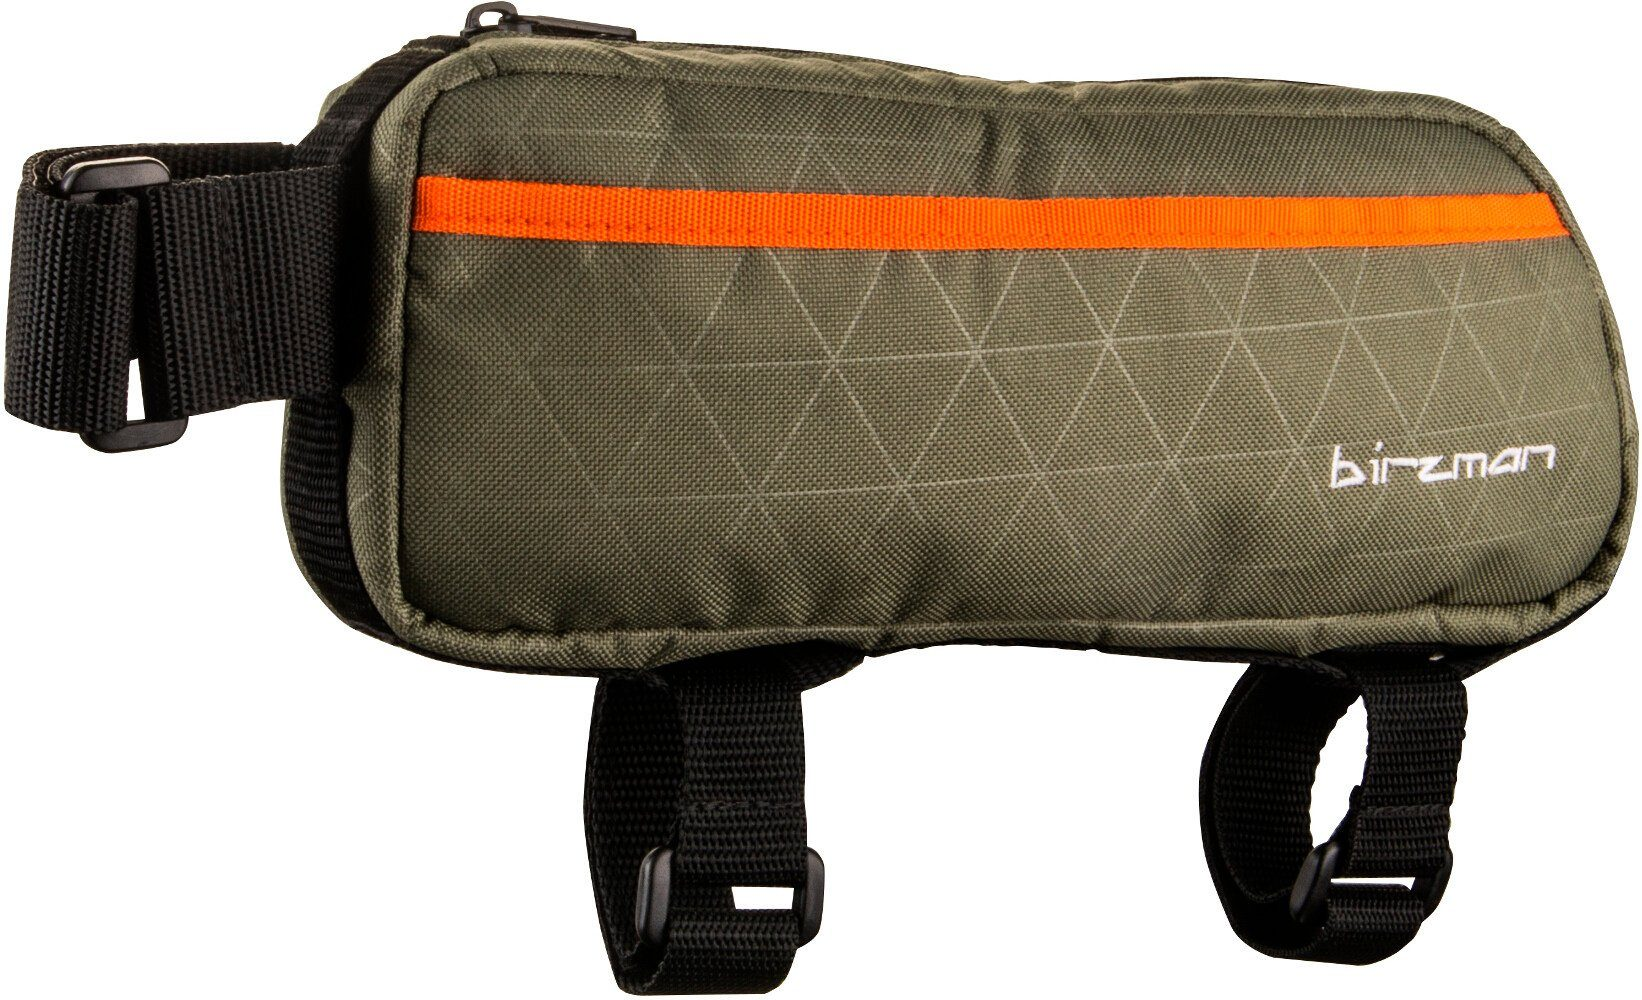 Birzman Fahrradtasche »Packman Travel Top Tube Pack«